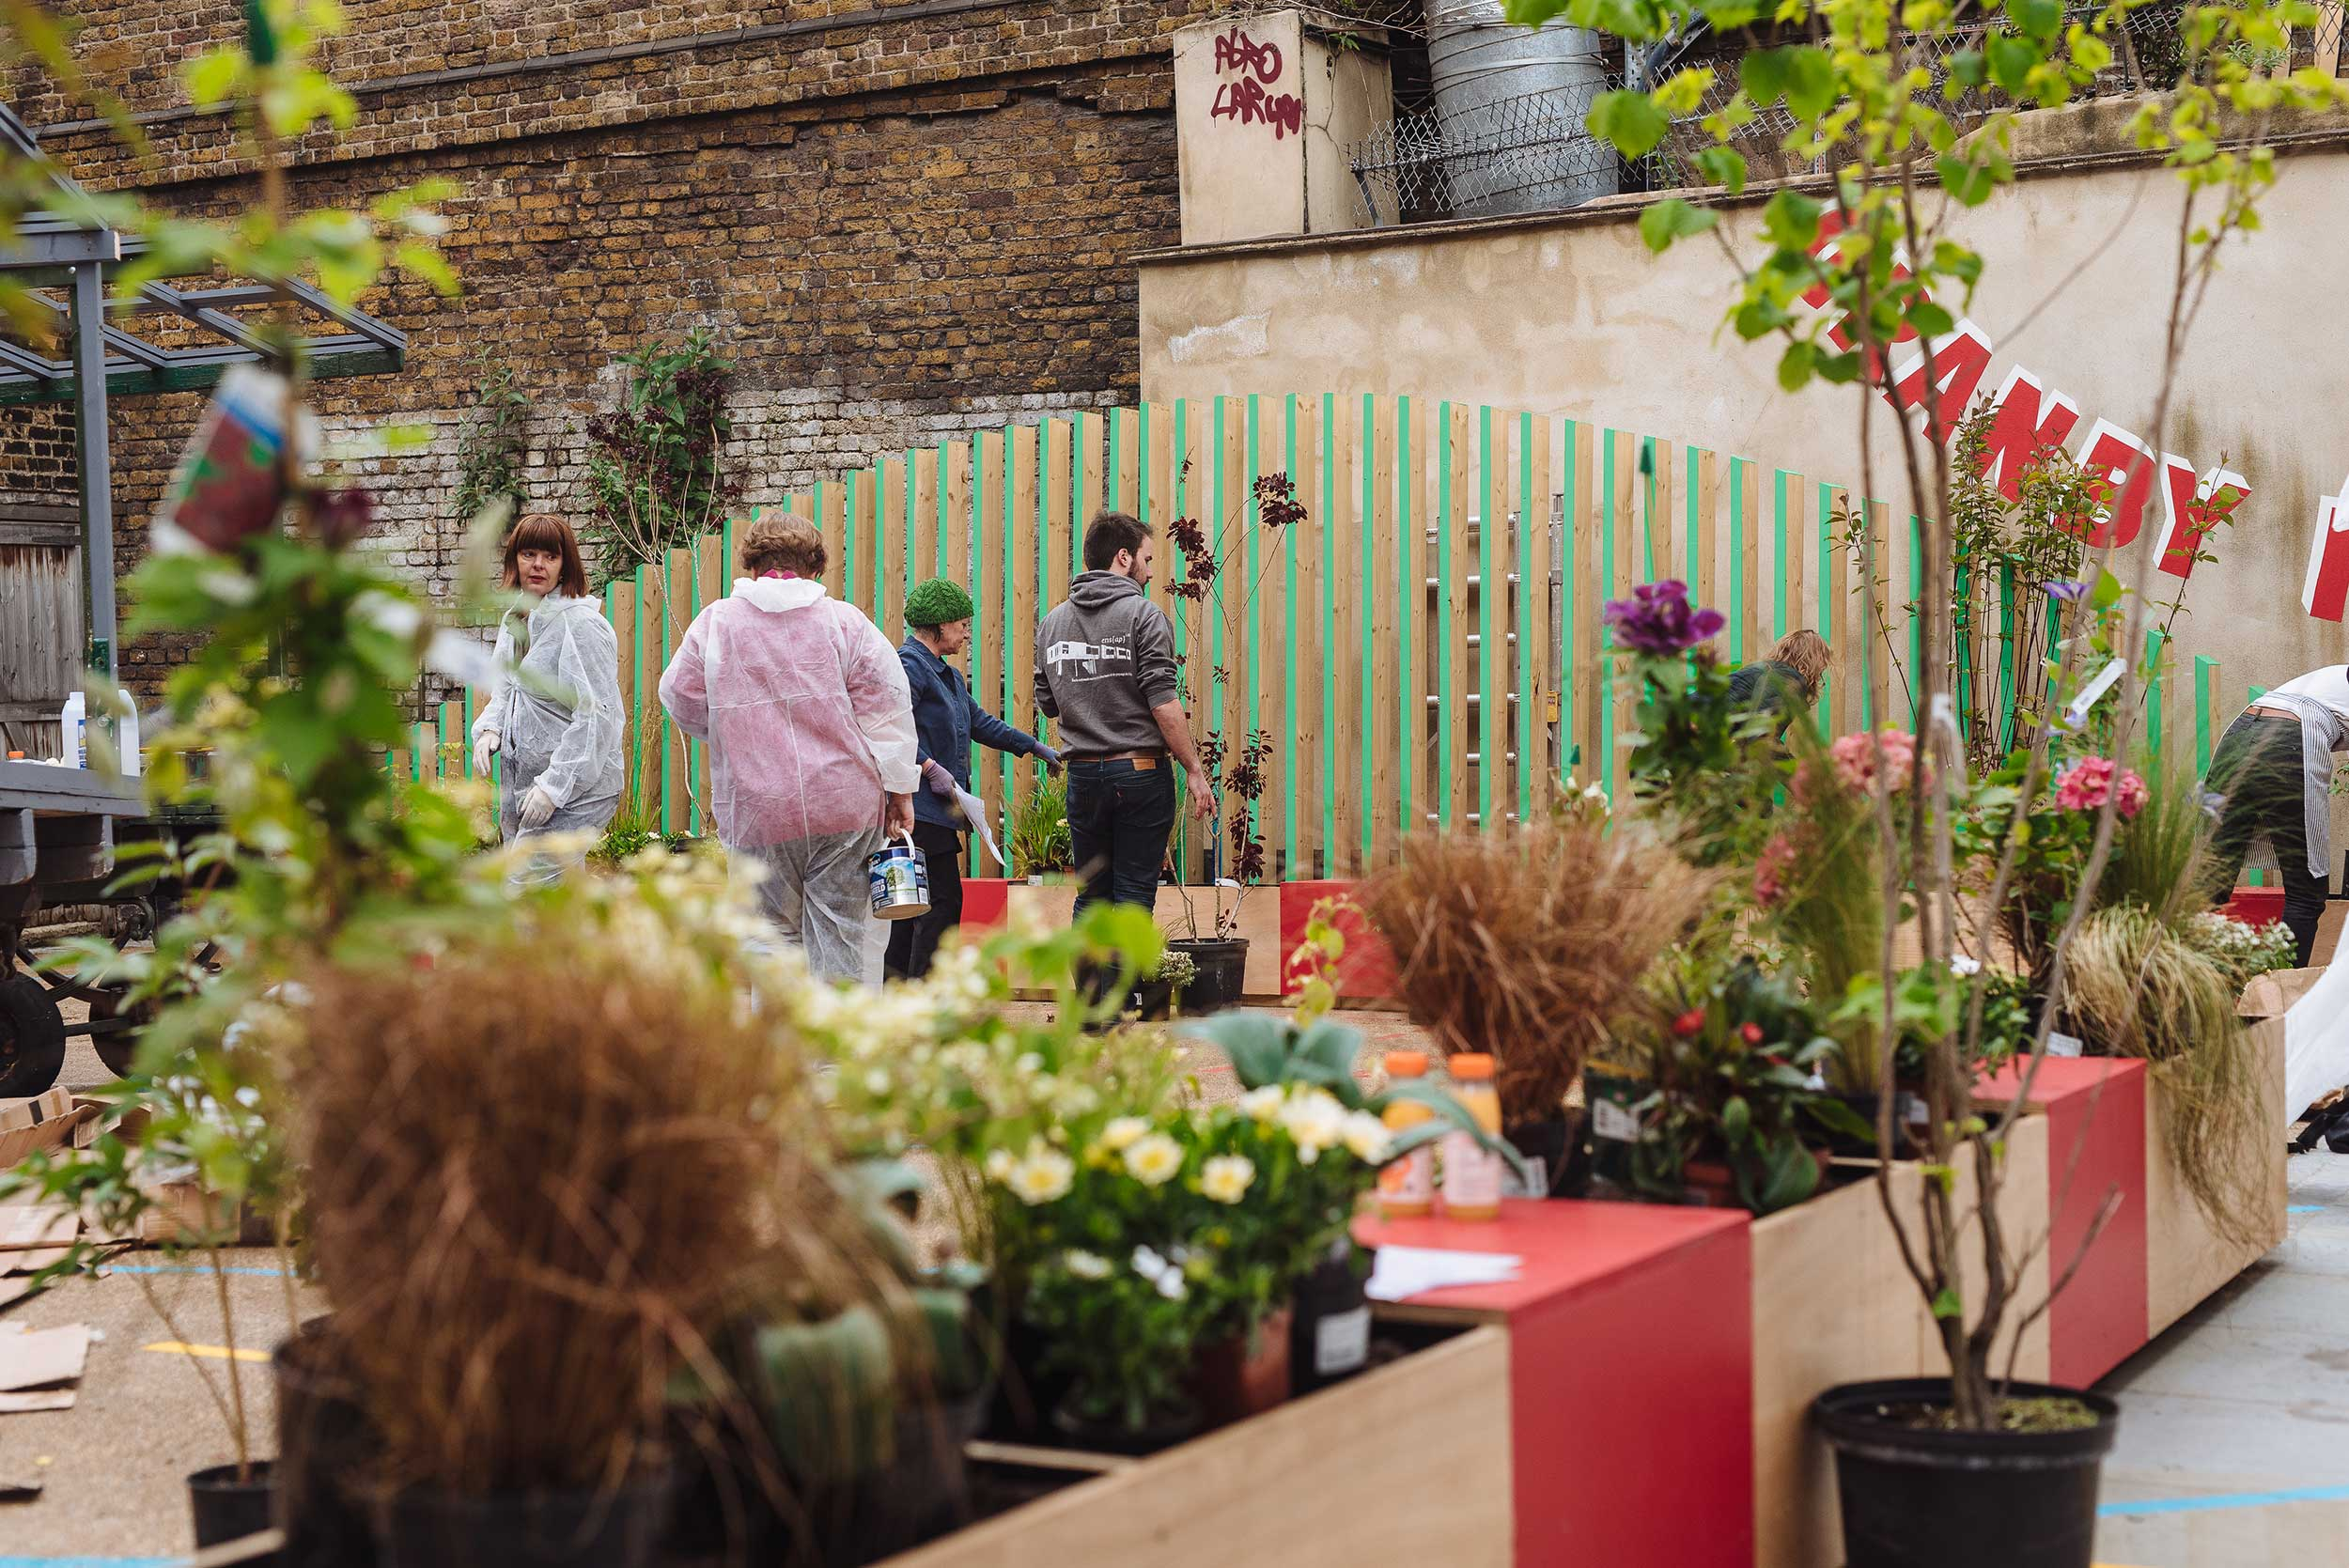 Lower Marsh, Waterloo. 'Meanwhile' projects can have an outsize impact on community life. IF_DO's transformation of a single-storey building and adjacent yard provided the community with affordable workspace and a public square while the building was awaiting redevelopment.